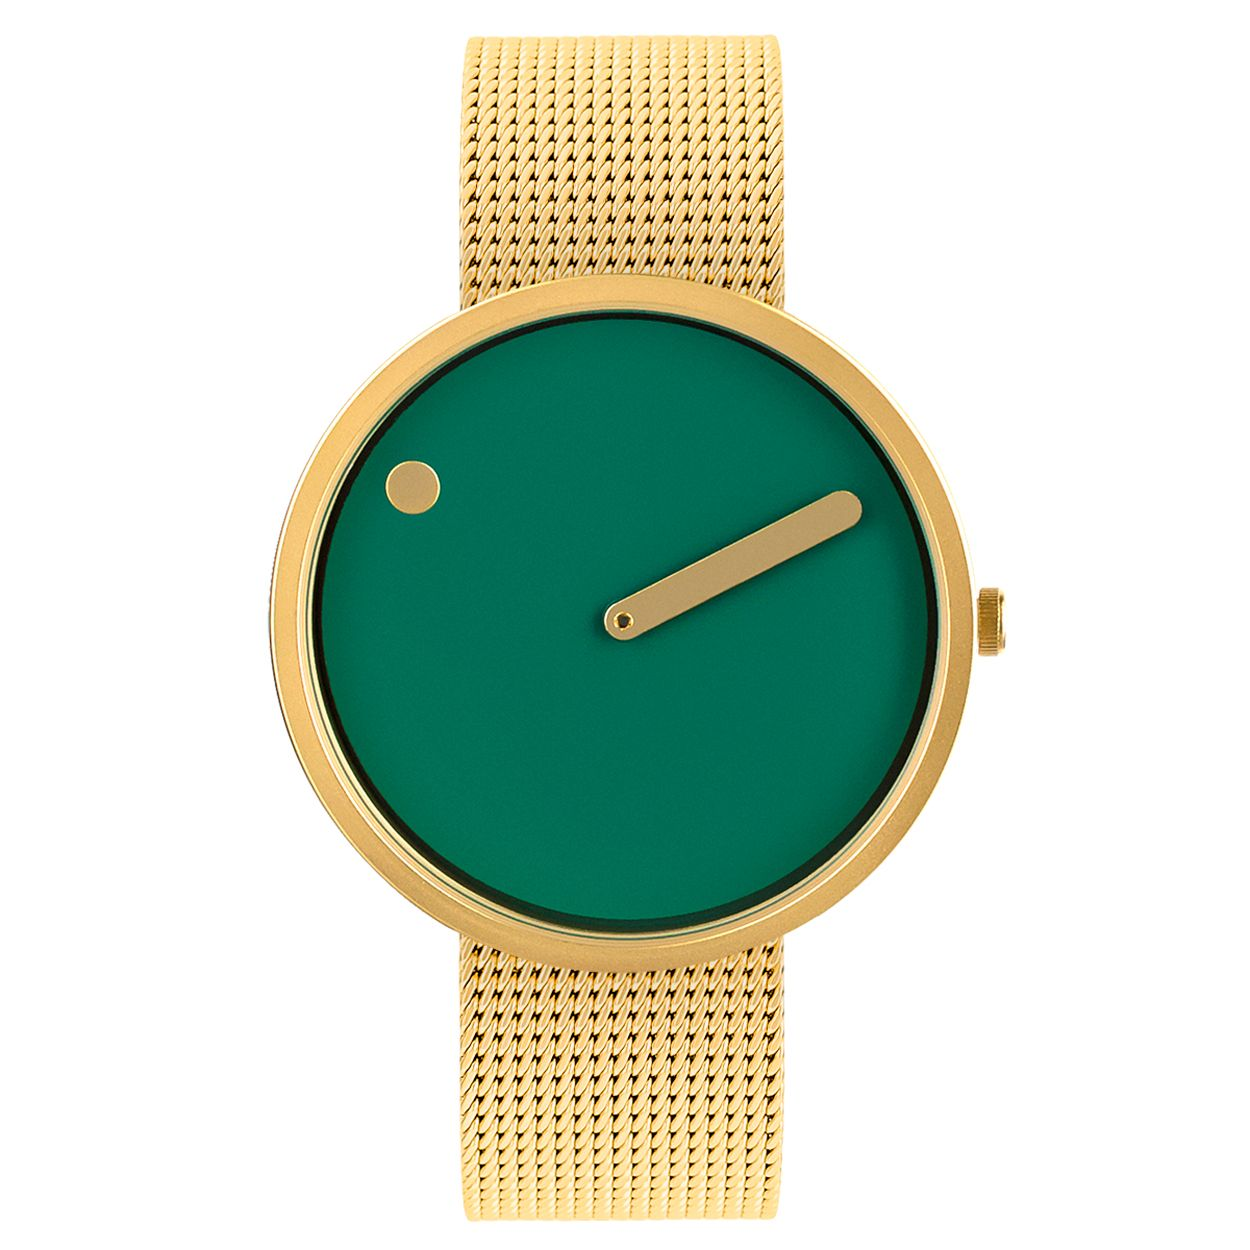 Rosendahl Uhren A Danish Design Classic The Picto Watch By Rosendahl Is Updated